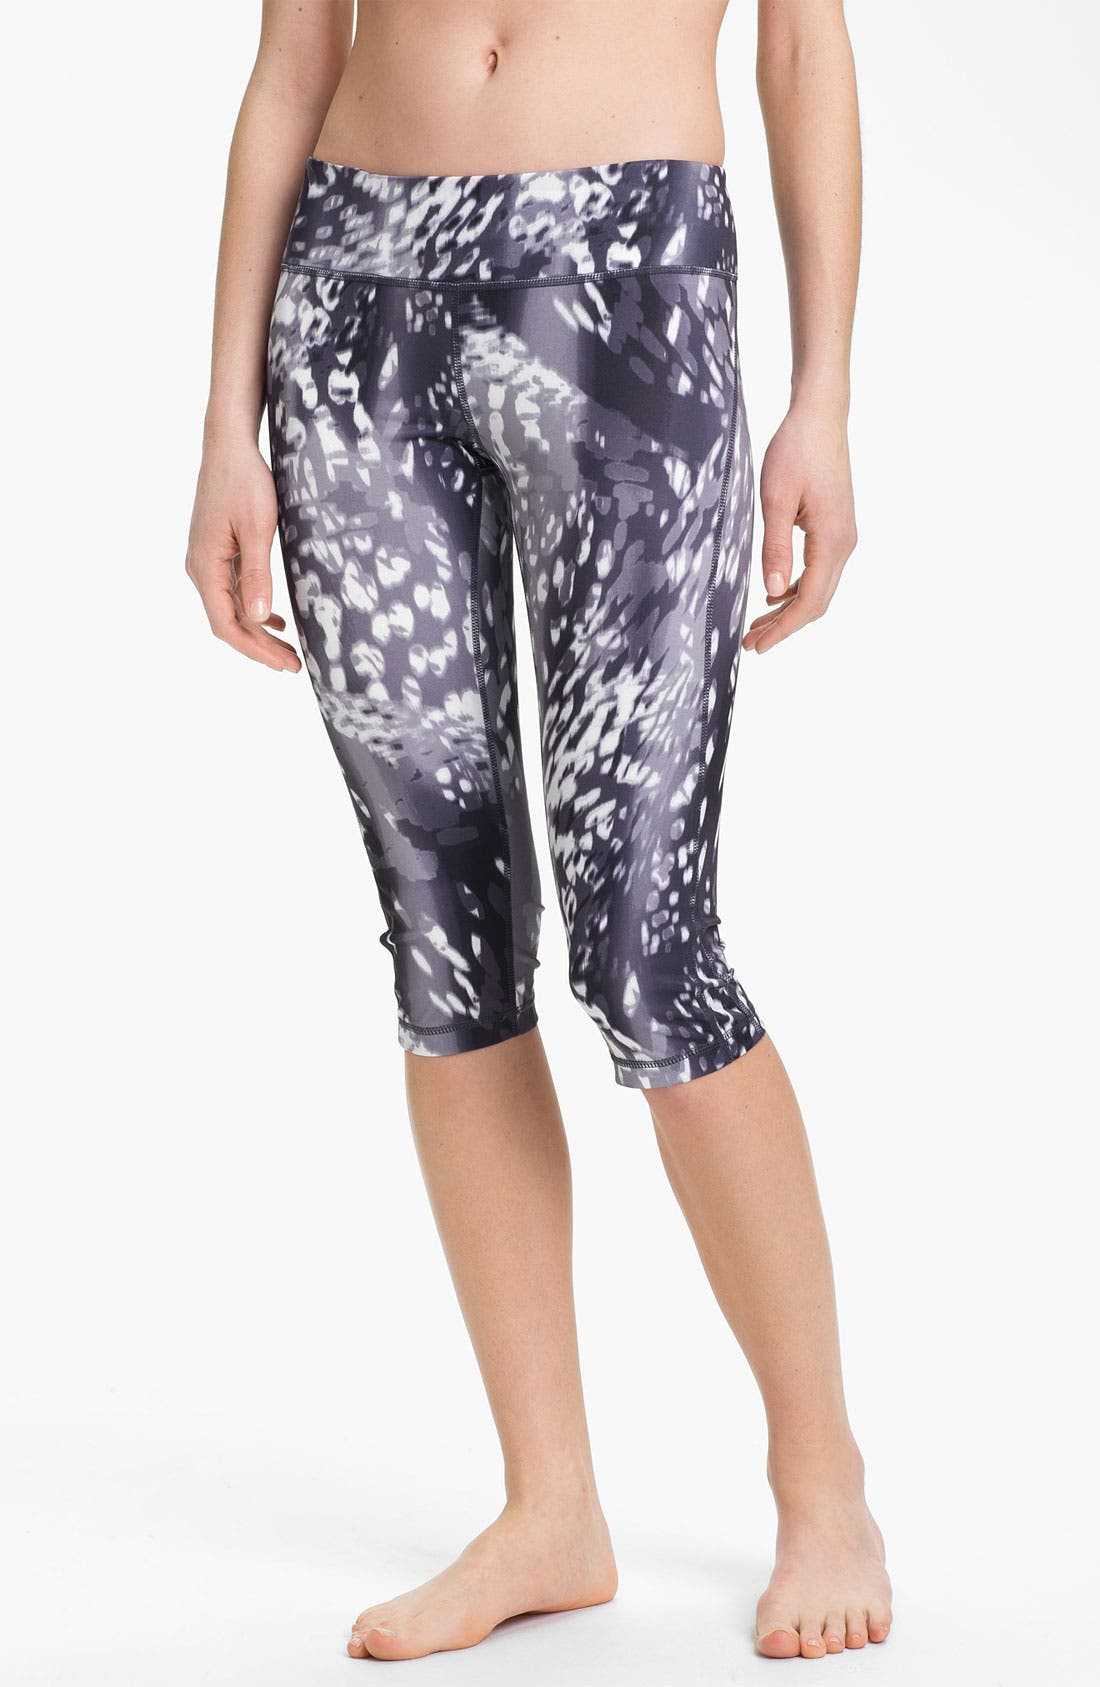 Alternate Image 1 Selected - Zella 'Live In' Print Capri Leggings